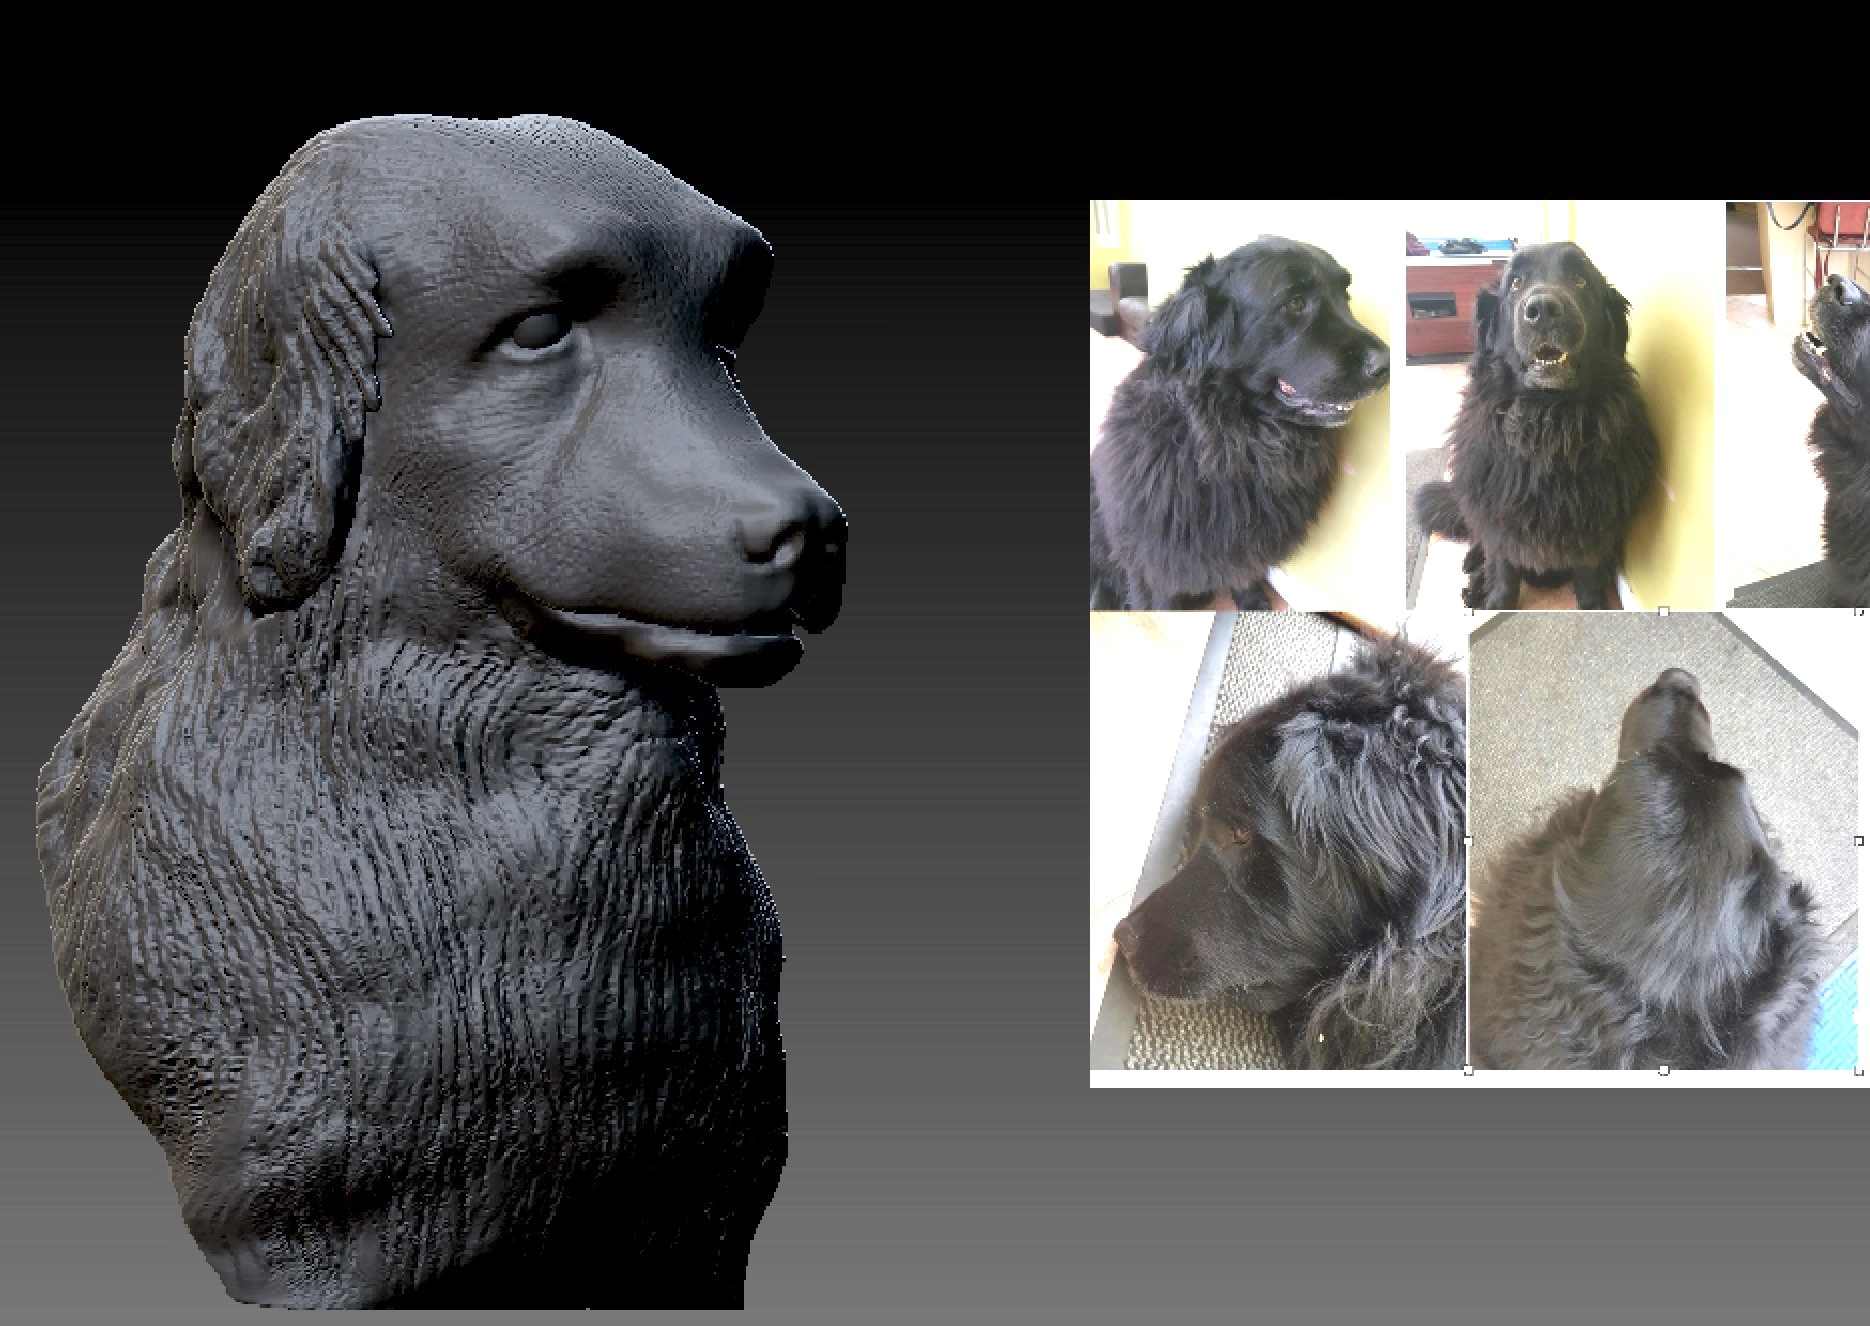 A special stick pin based on a customers much-loved dog. This ended up at about 25mm high and the detail came out beautifully. Trying to capture a good likeness takes a lot of time!